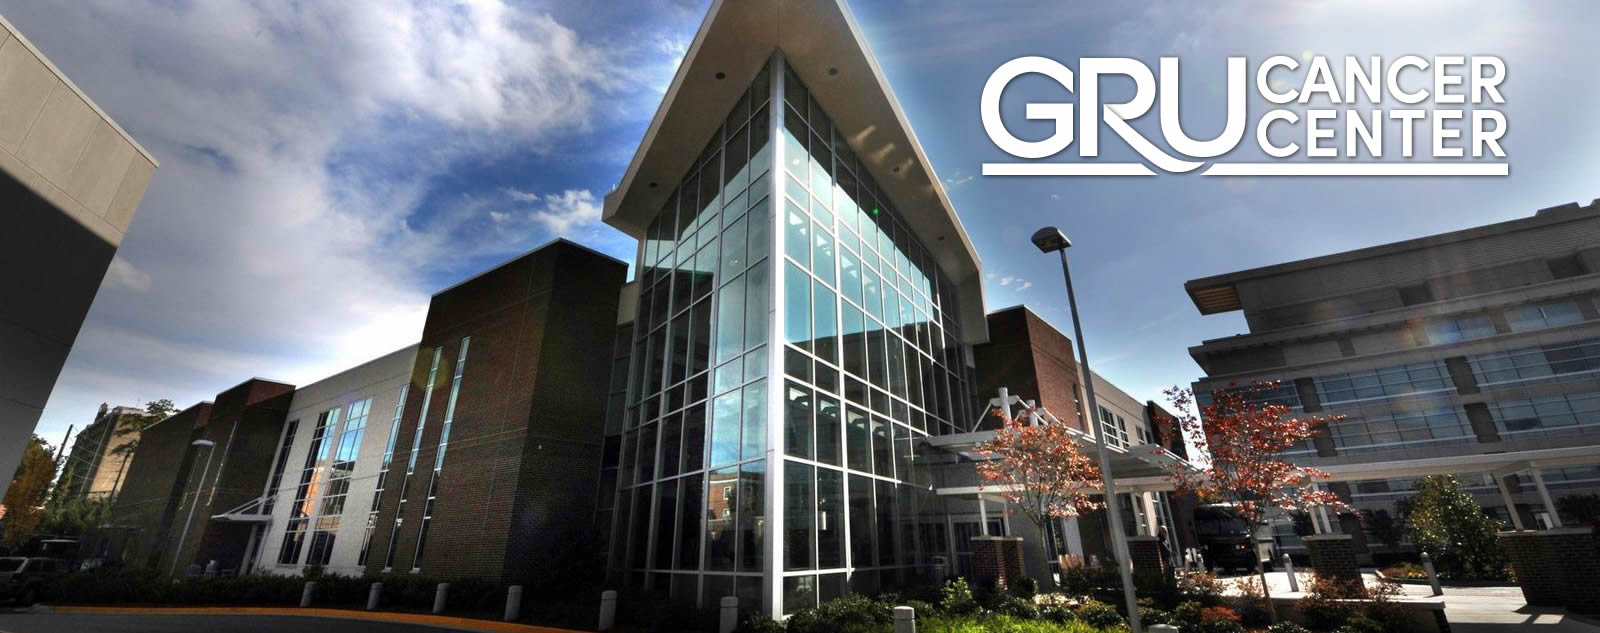 GRU Cancer Center Team | Our Physicians, Faculty and Staff